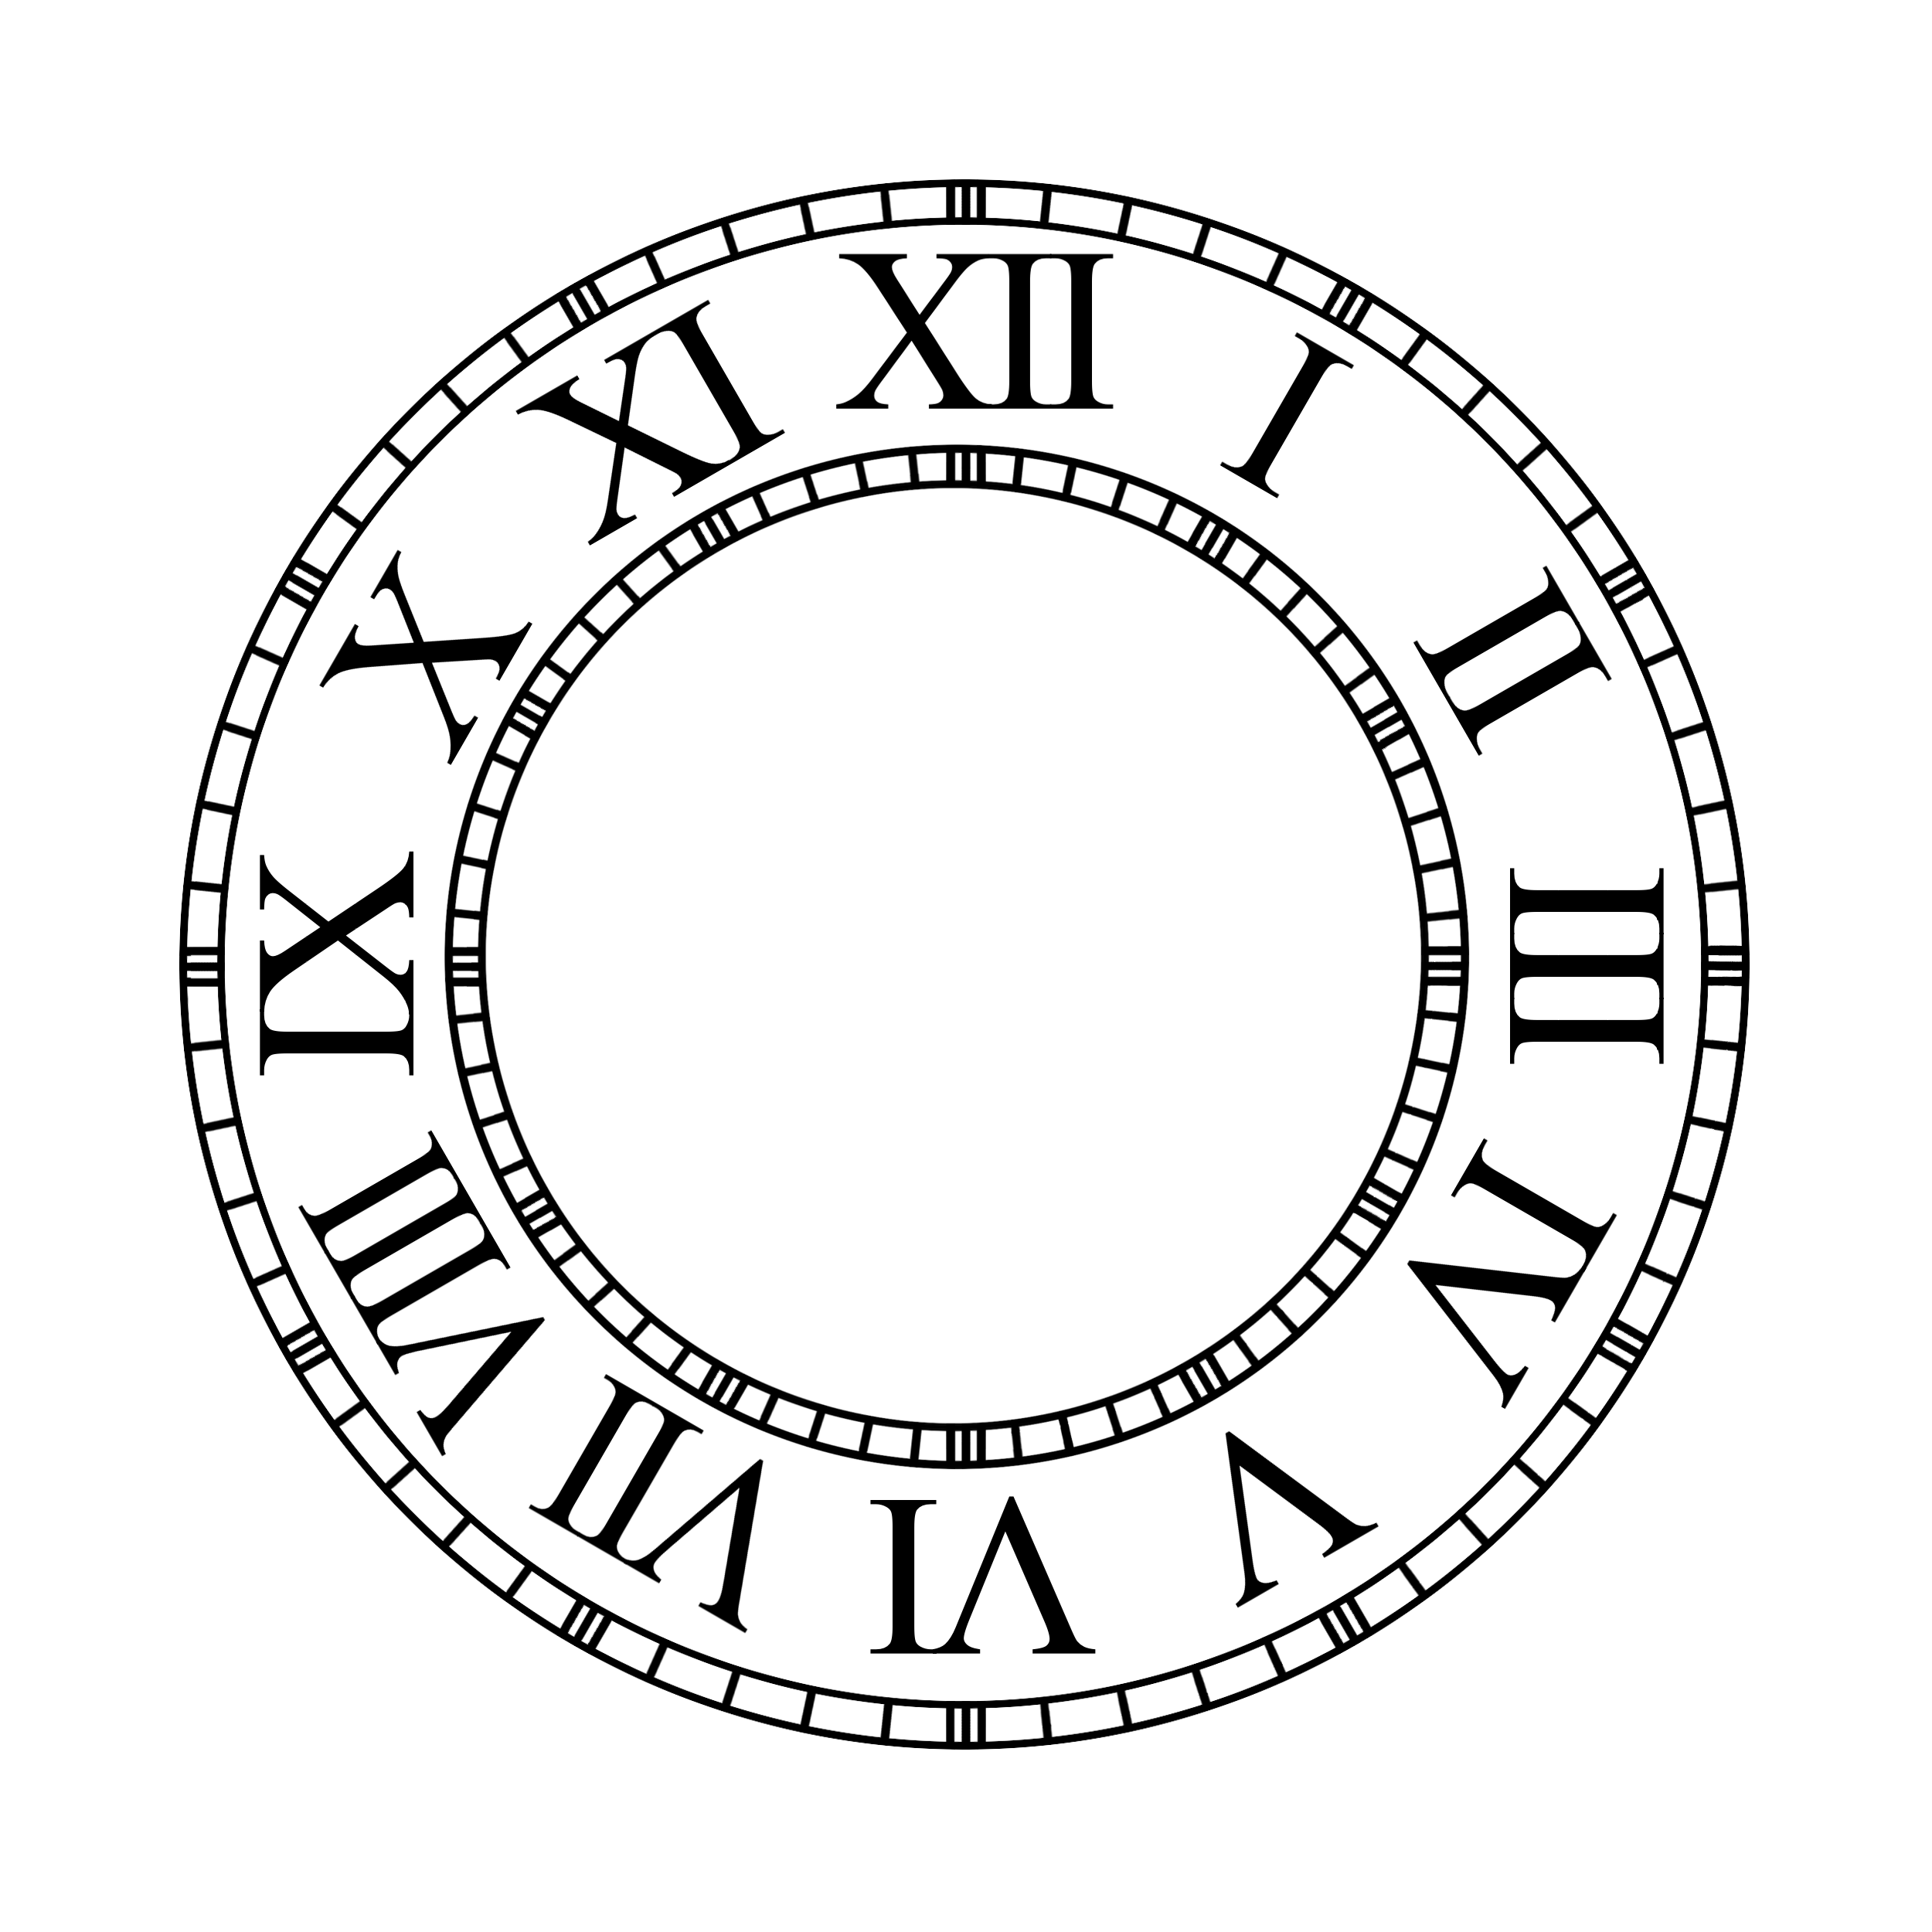 Free Clock Faces Printable Clock Face Printable Clock Drawings Clock Face